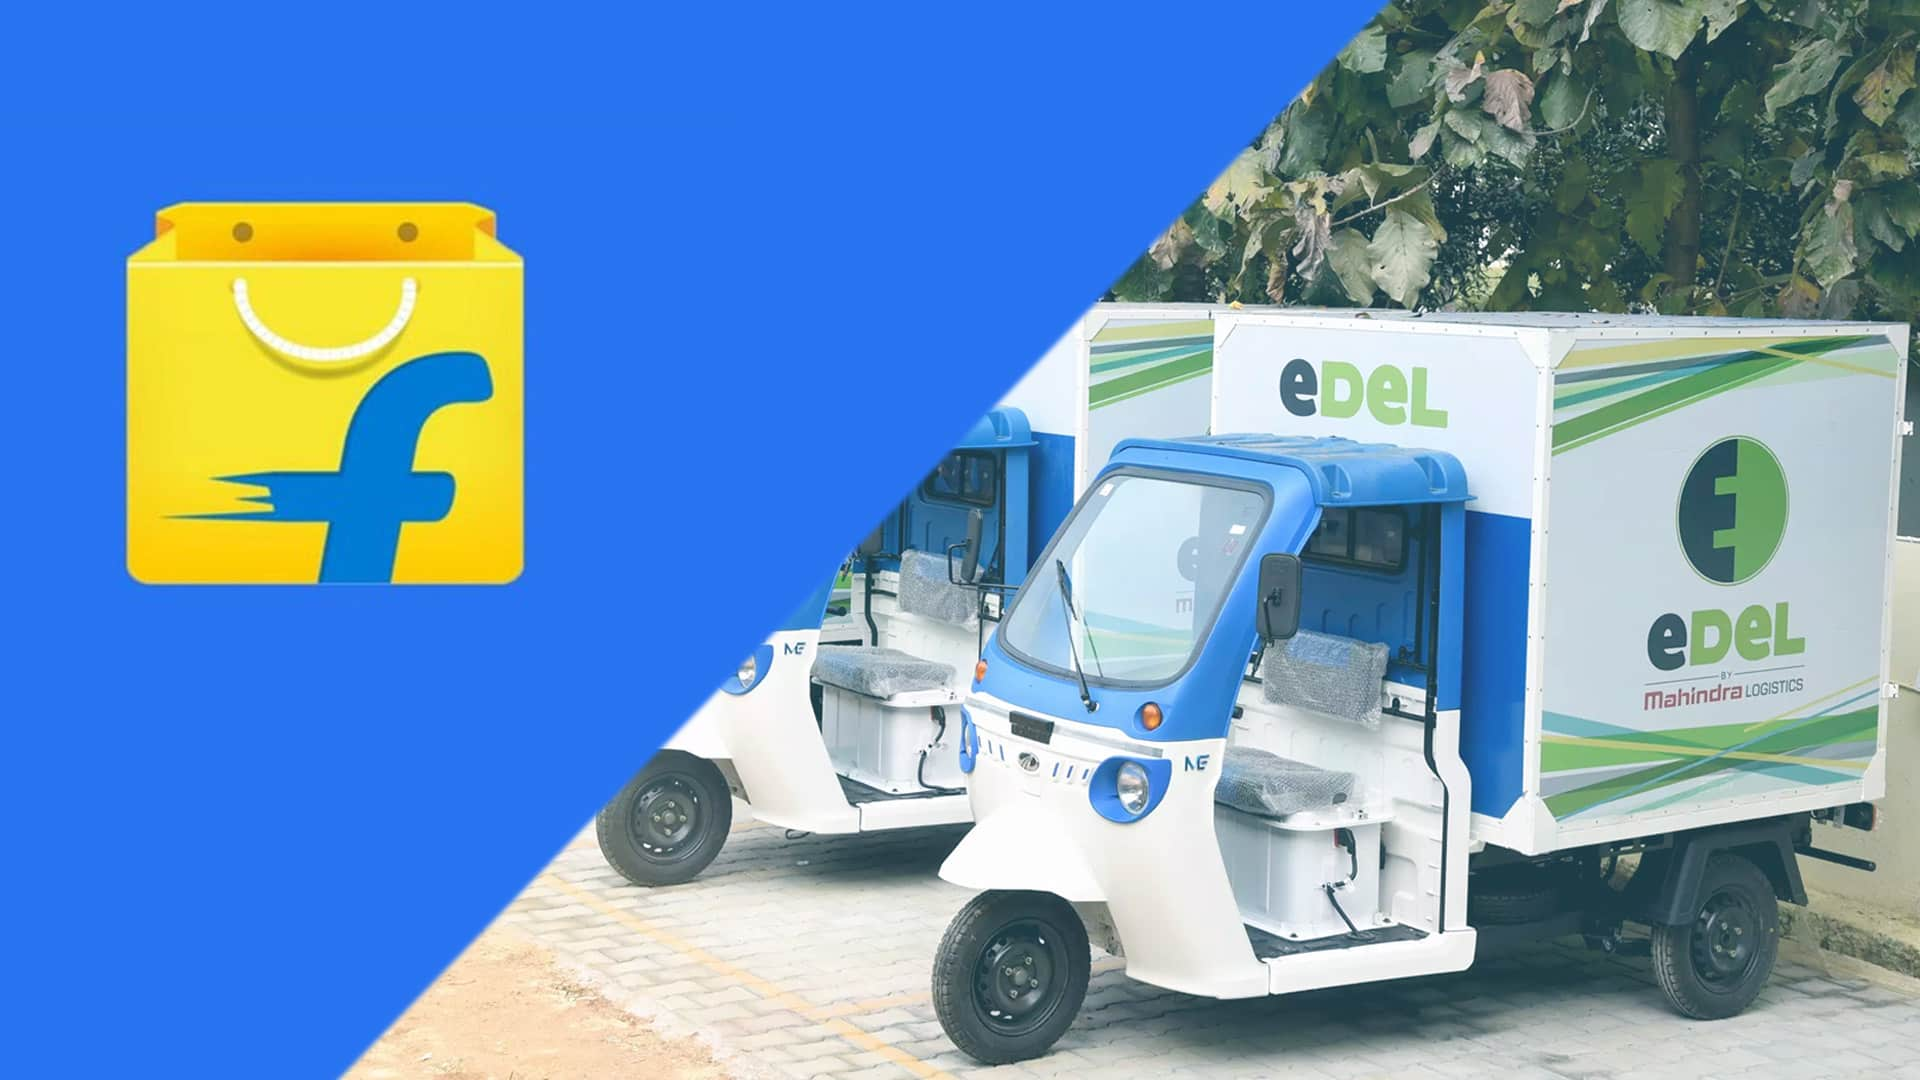 Flipkart ties up with Mahindra Logistics to accelerate deployment of Electric Vehicles